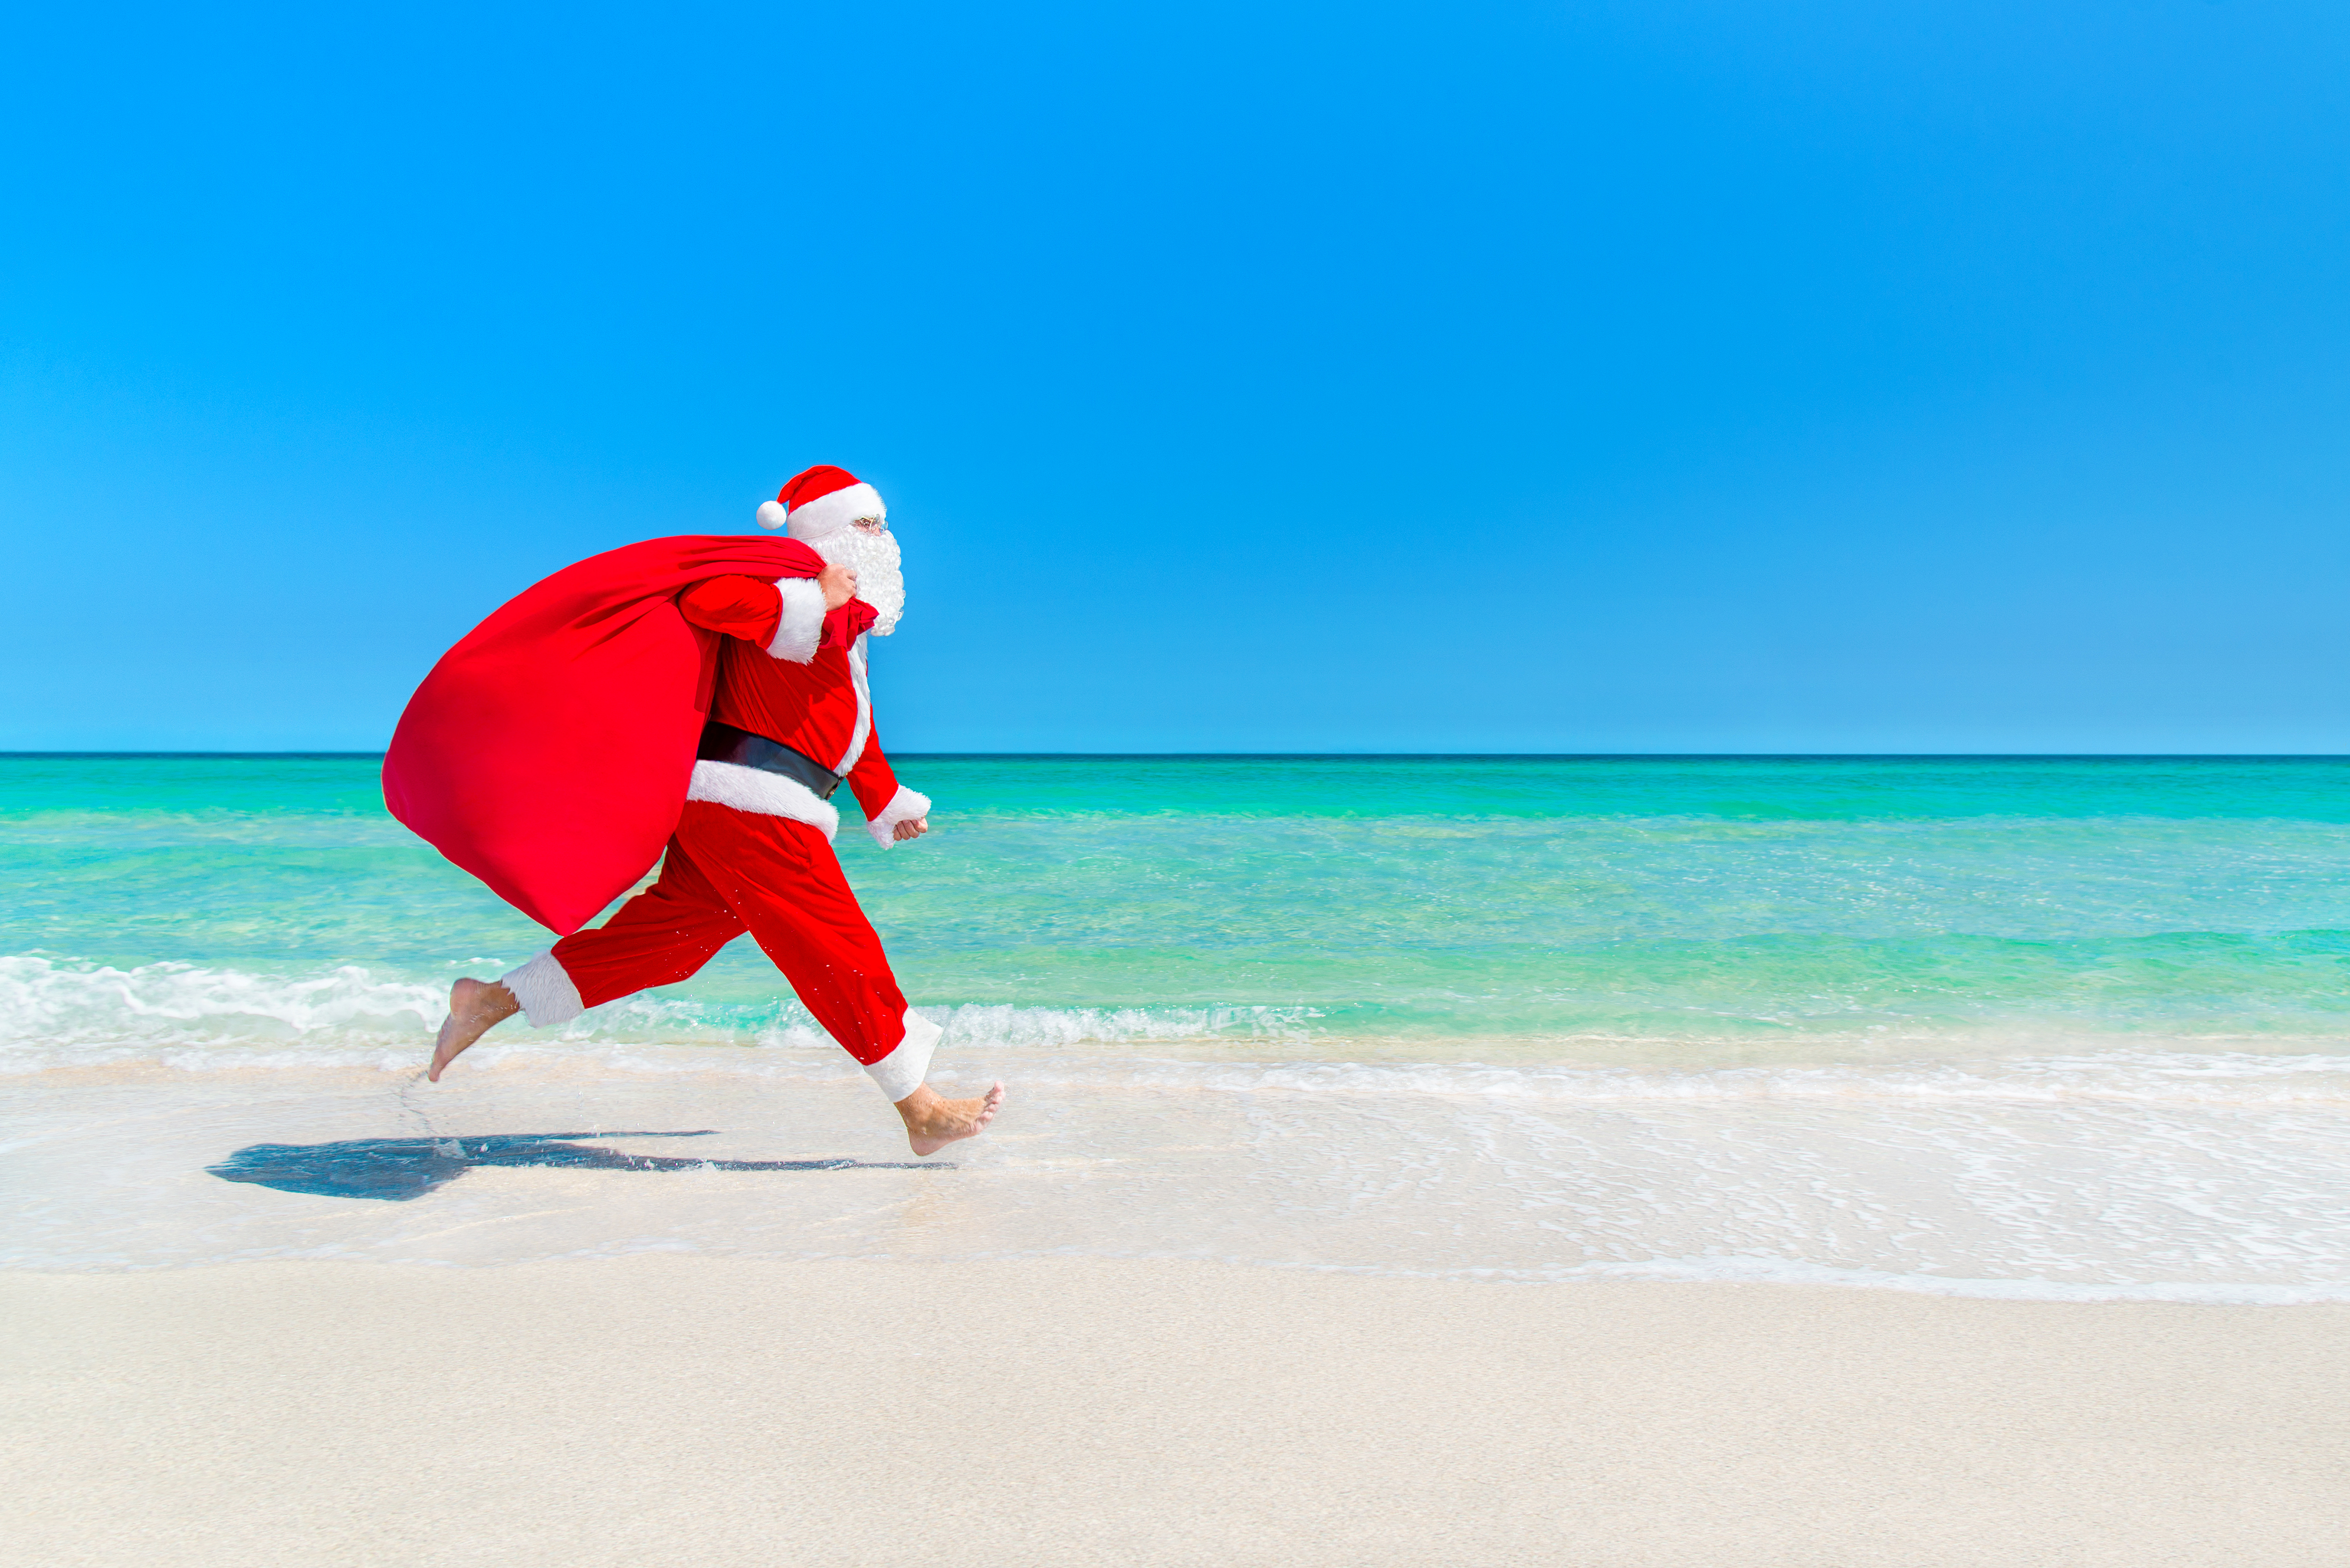 Christmas Santa Claus running with big sack full of gifts hurry on present it for children along ocean tropical sandy beach - xmas travel vacation discounts and travel agencies price reductions concept